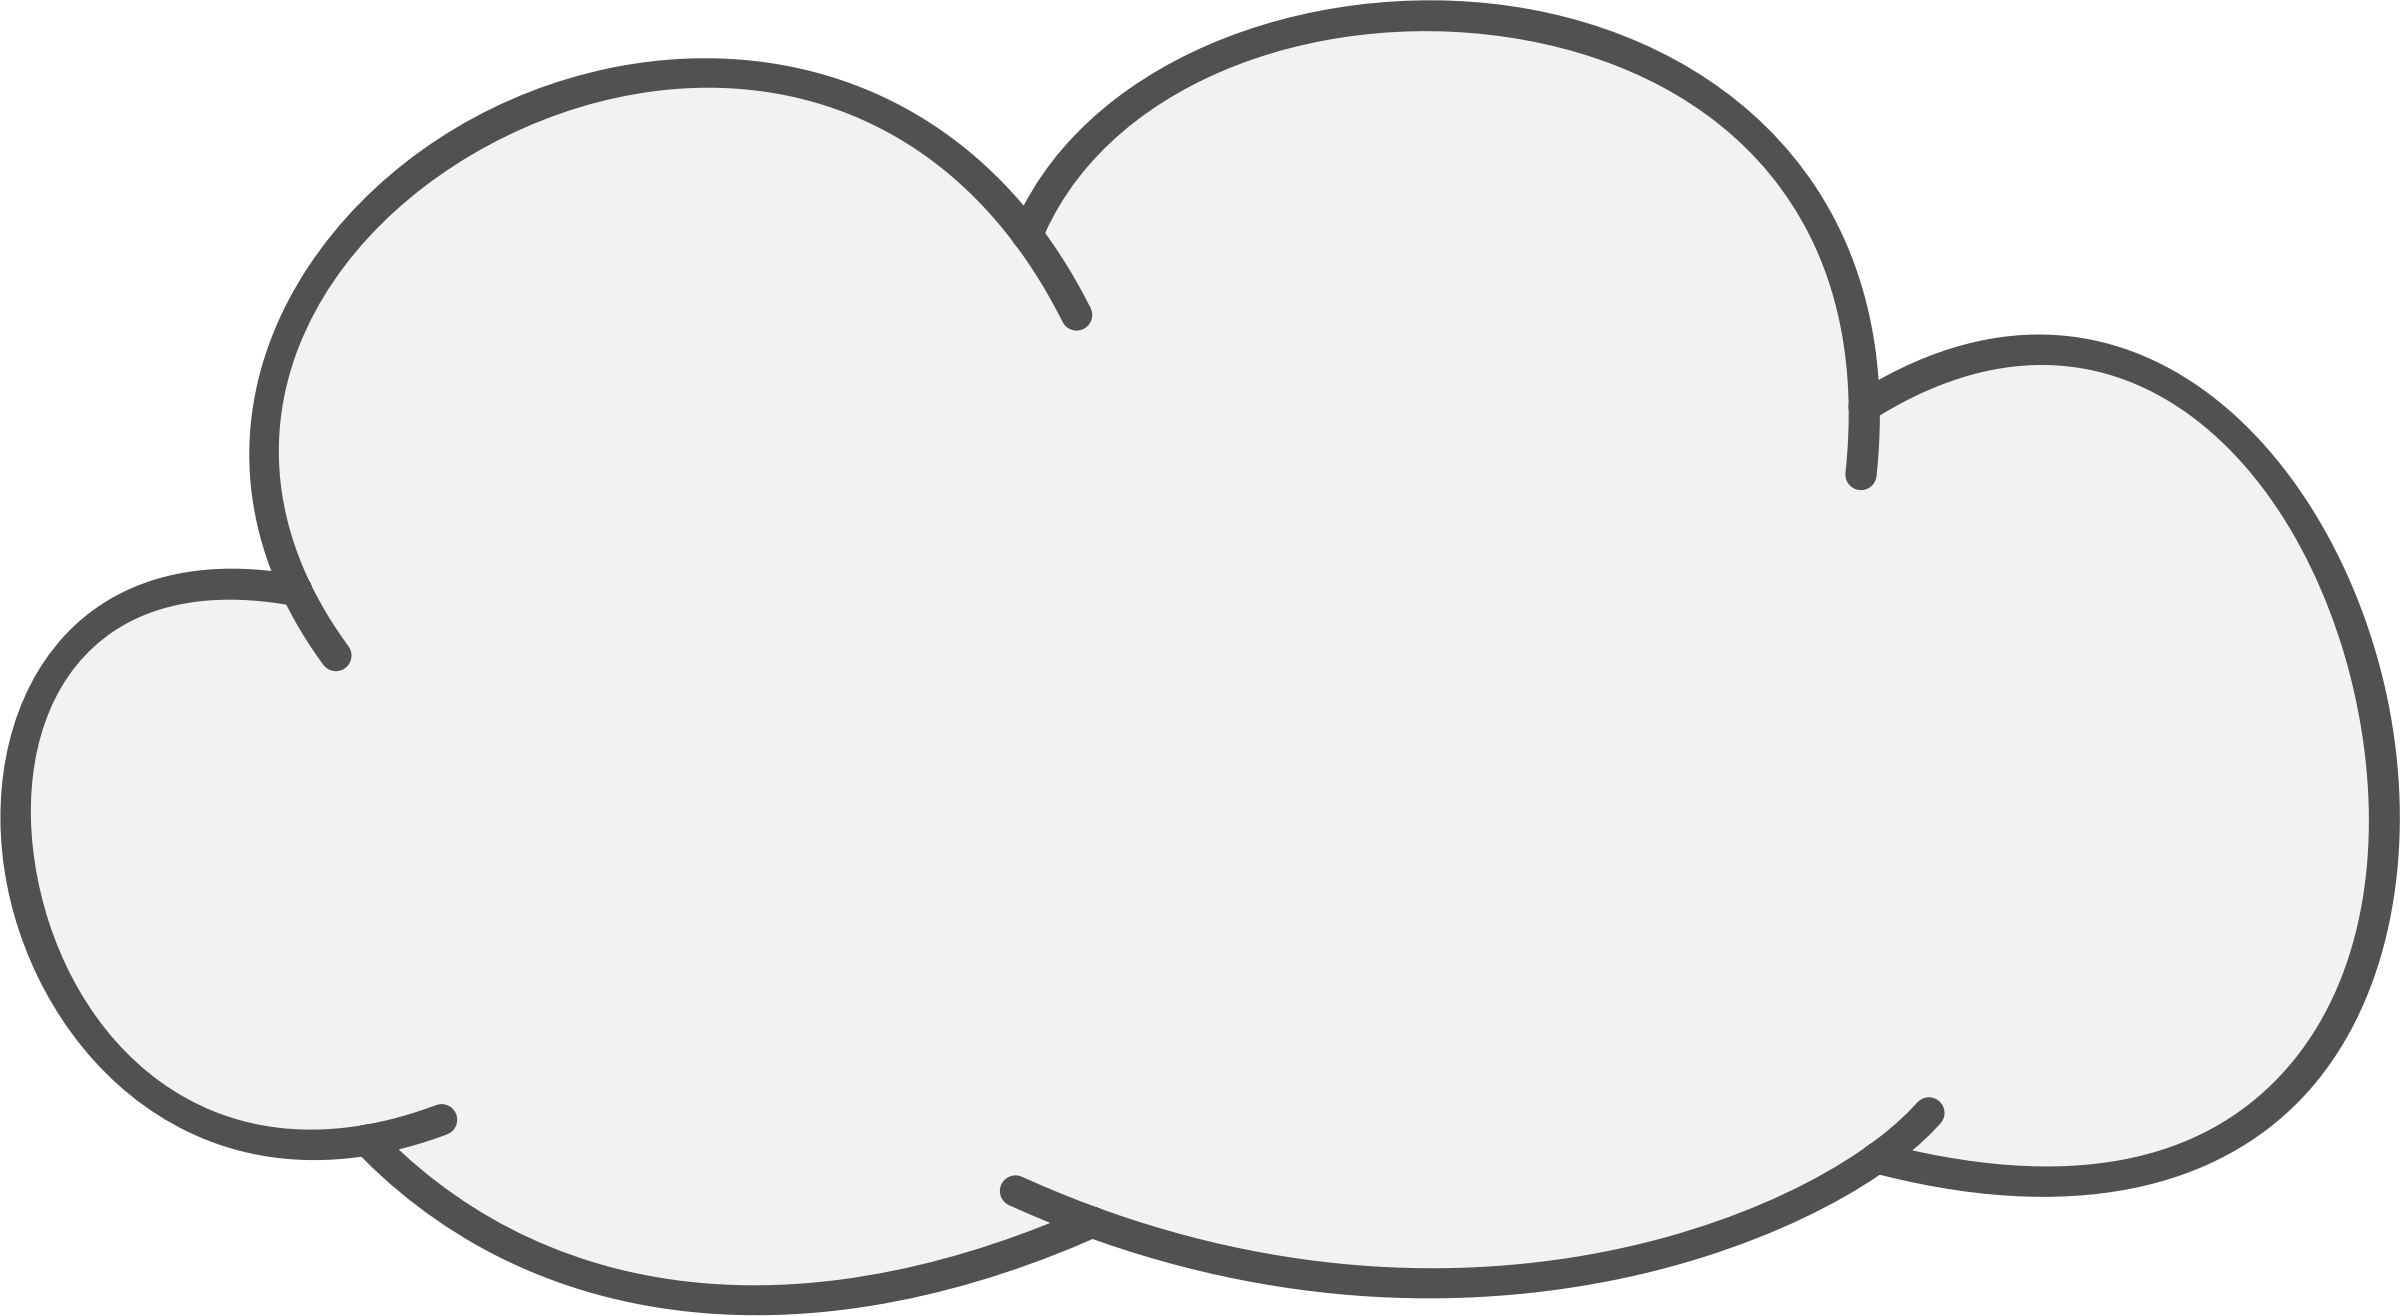 clouds clipart png - Clipground